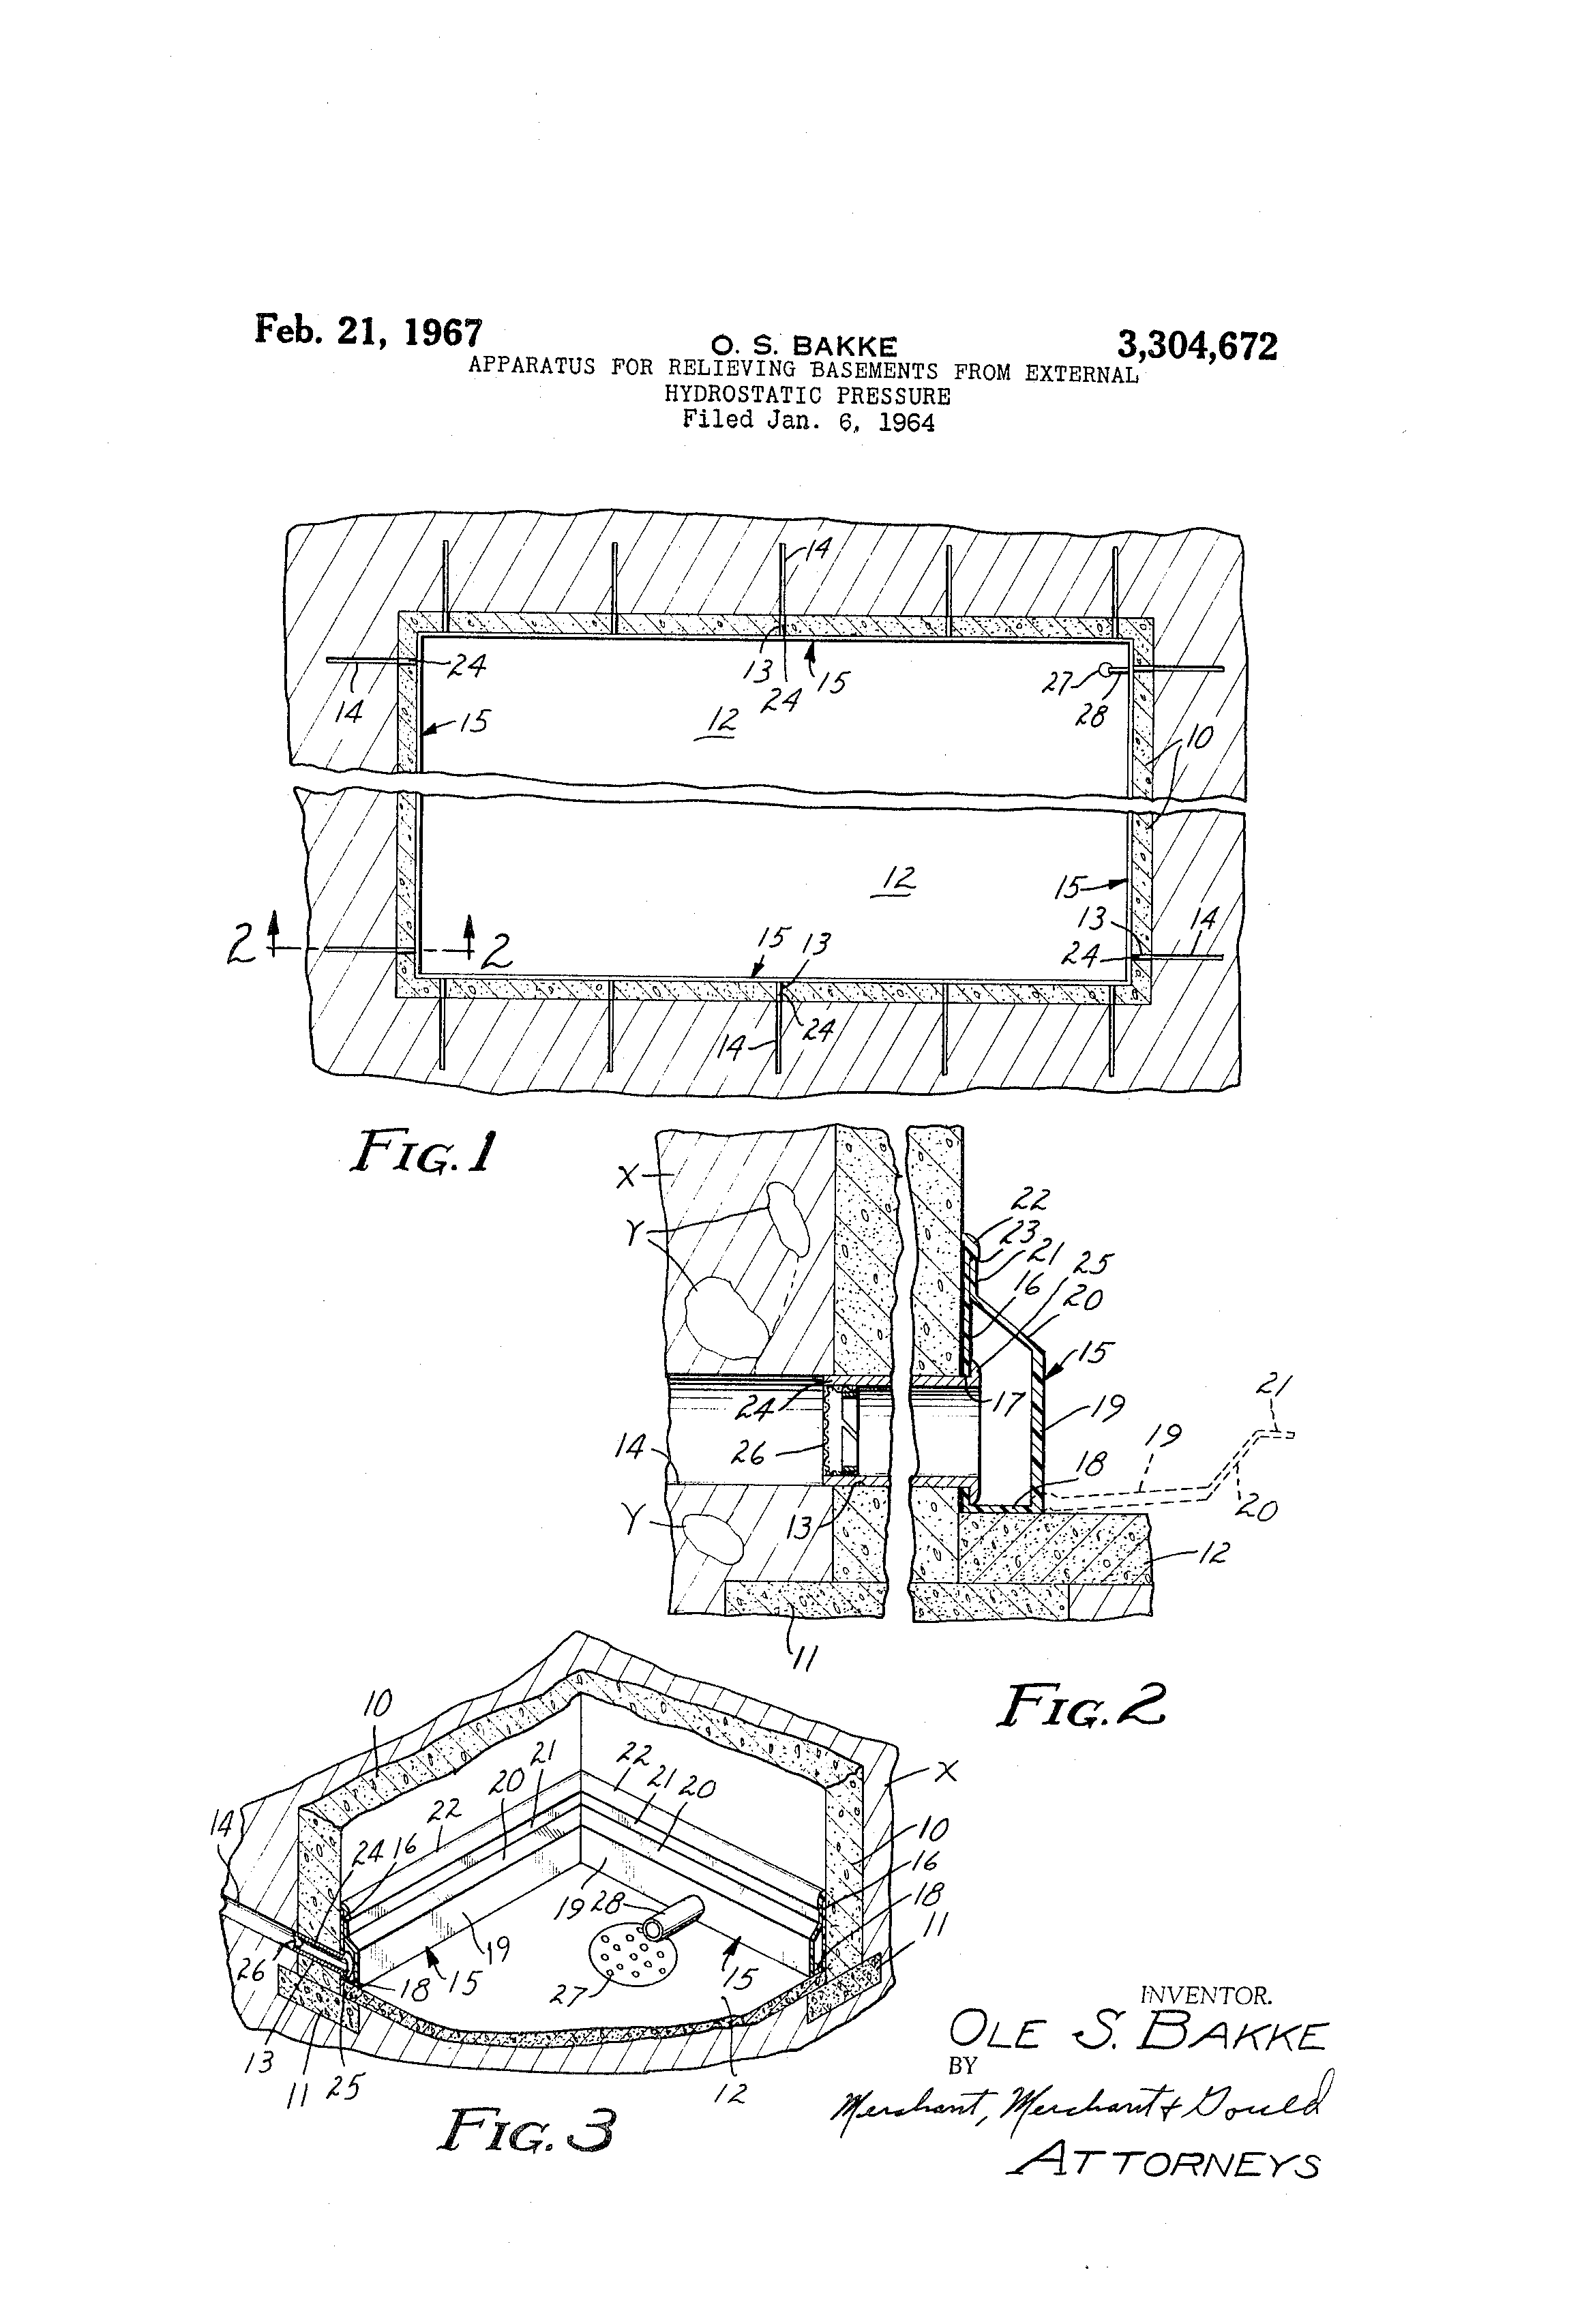 basements from external hydrostatic pressure google patents